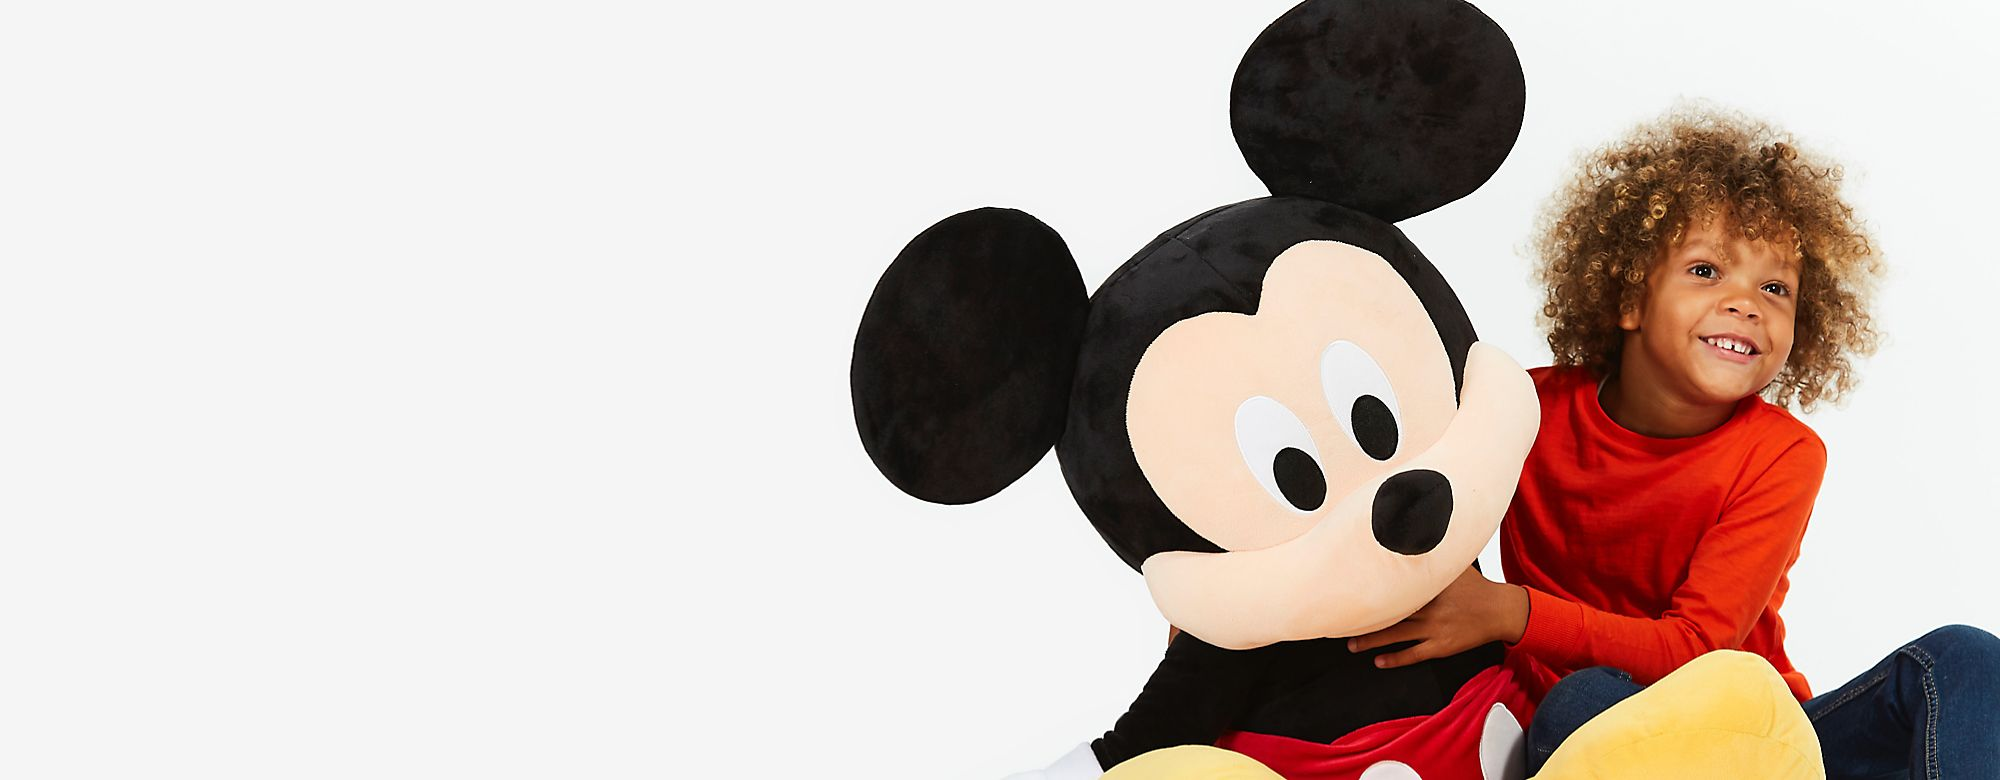 Disney Explore our collection of everything Disney from toys to clothing, collectibles and more EXPLORE MORE